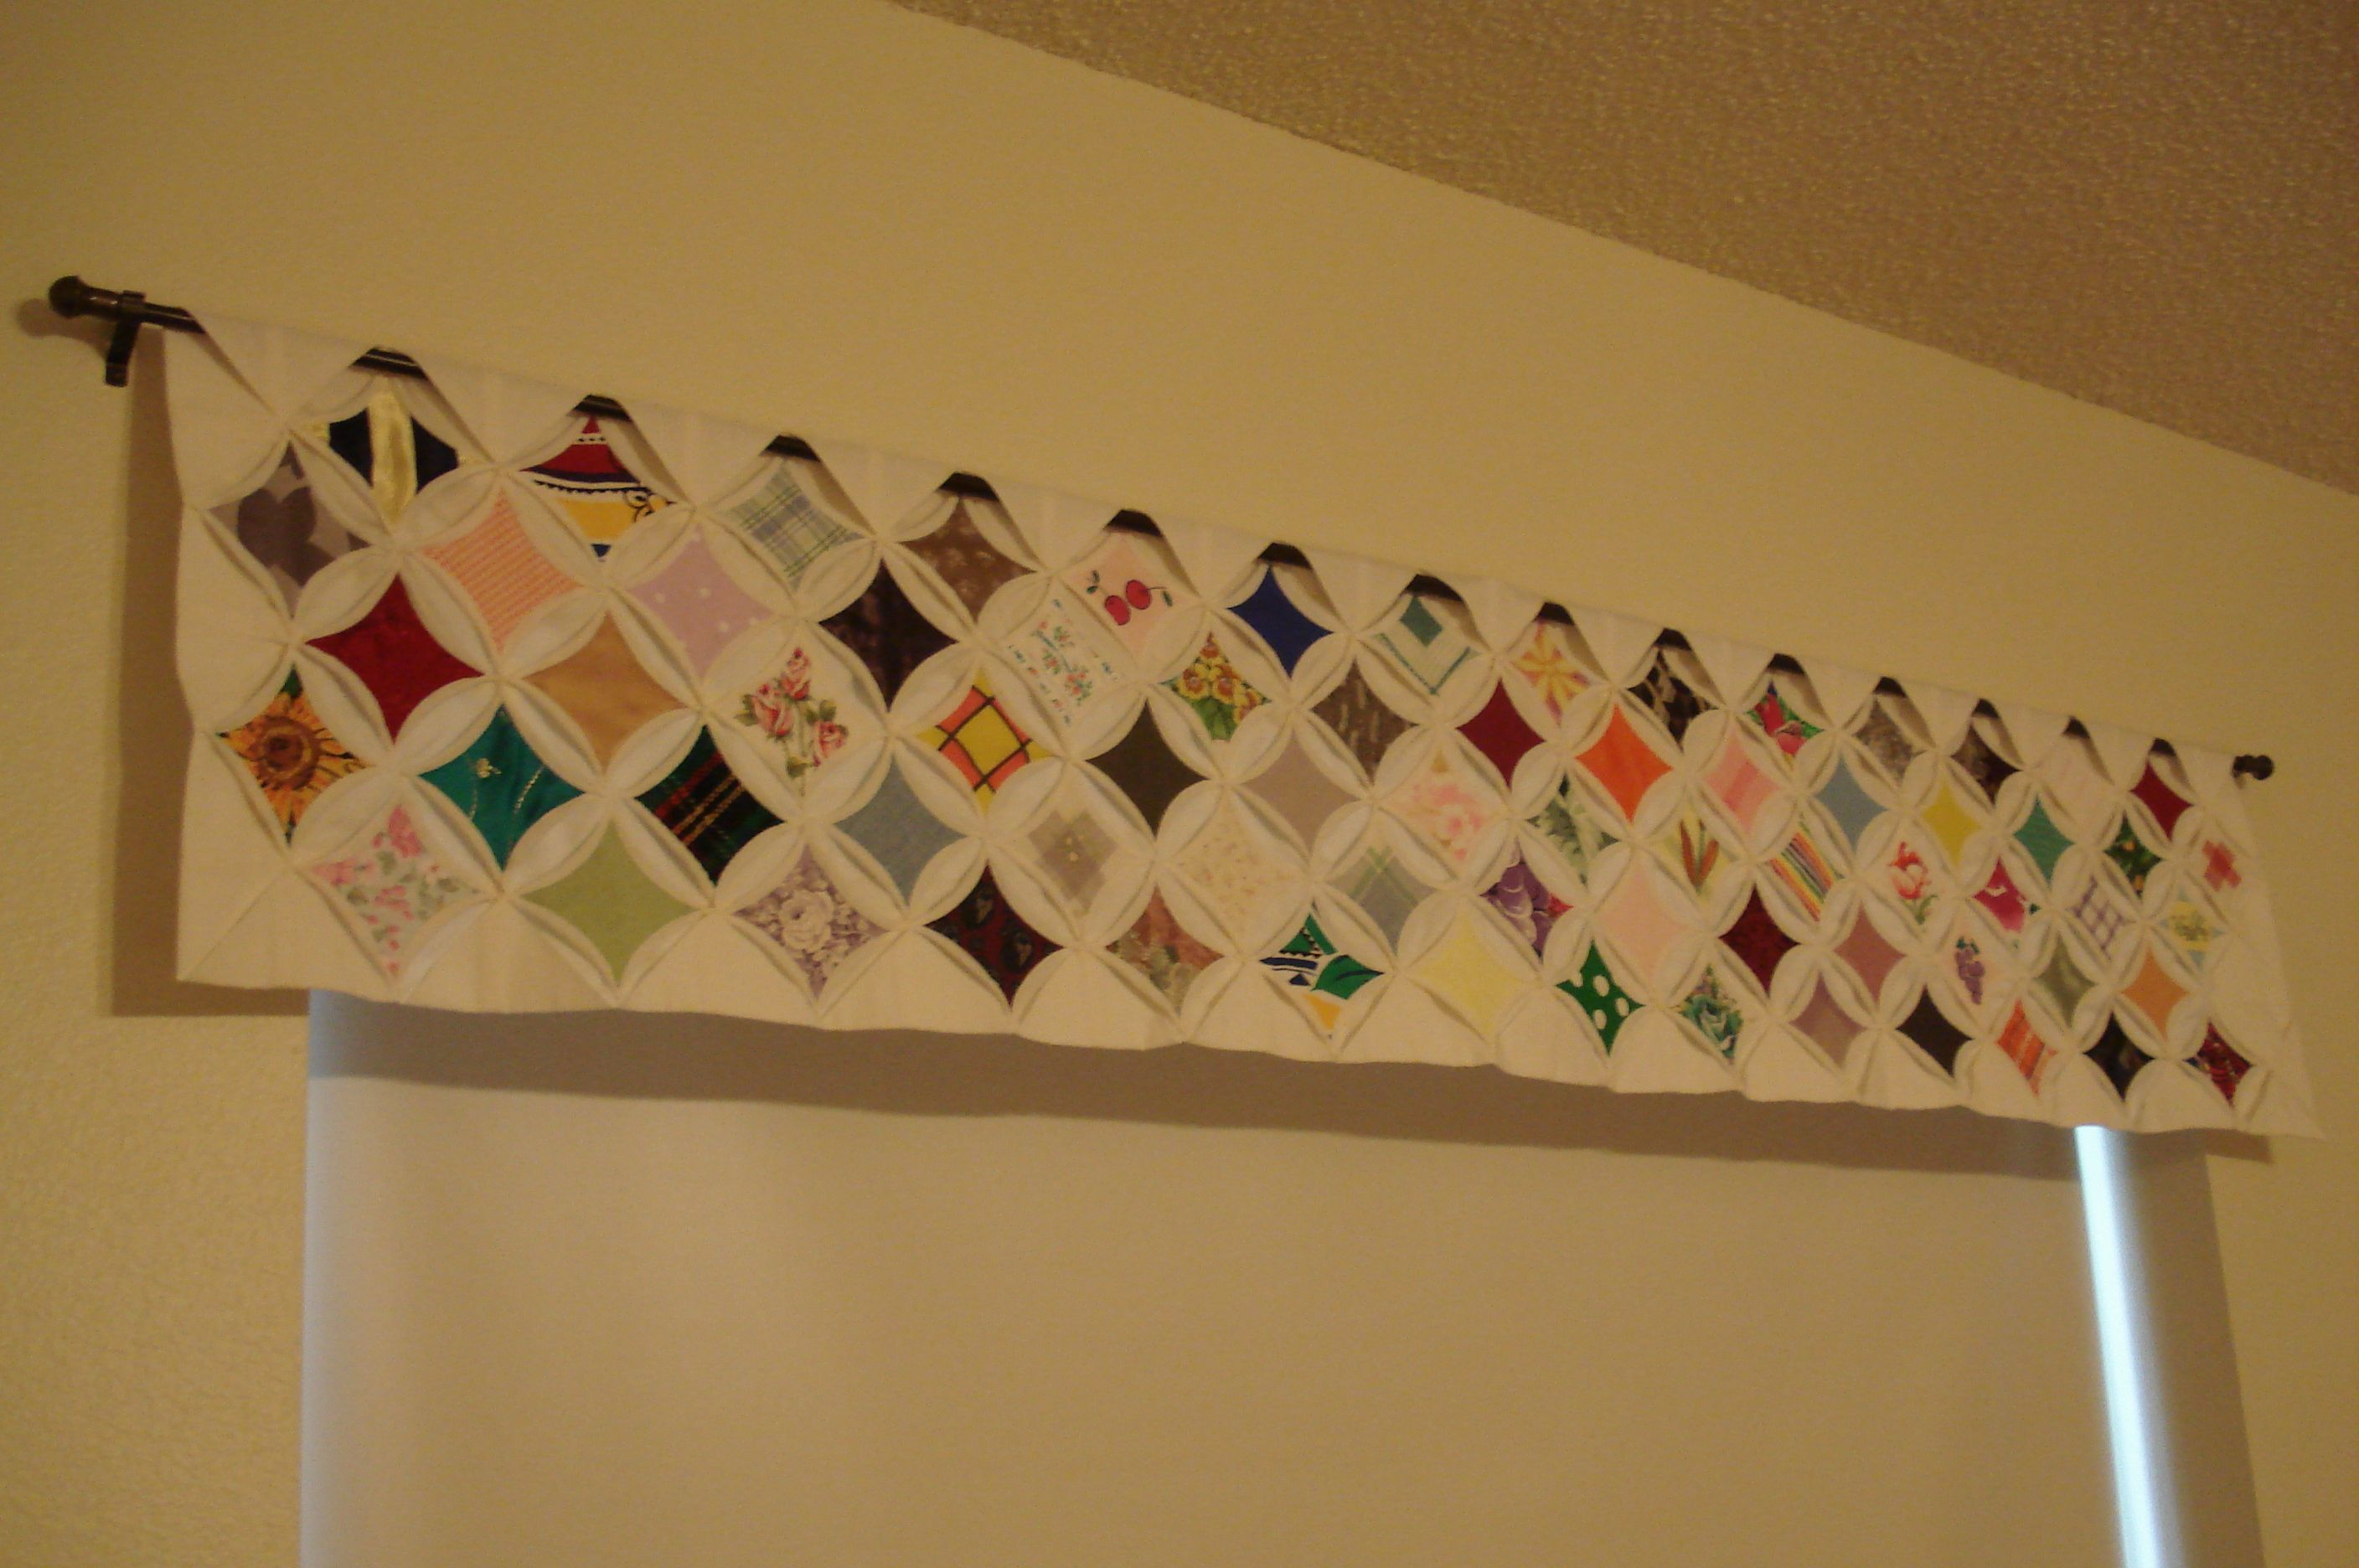 Cathedral window quilt valance | quilted valence | Pinterest ... : quilted valances - Adamdwight.com